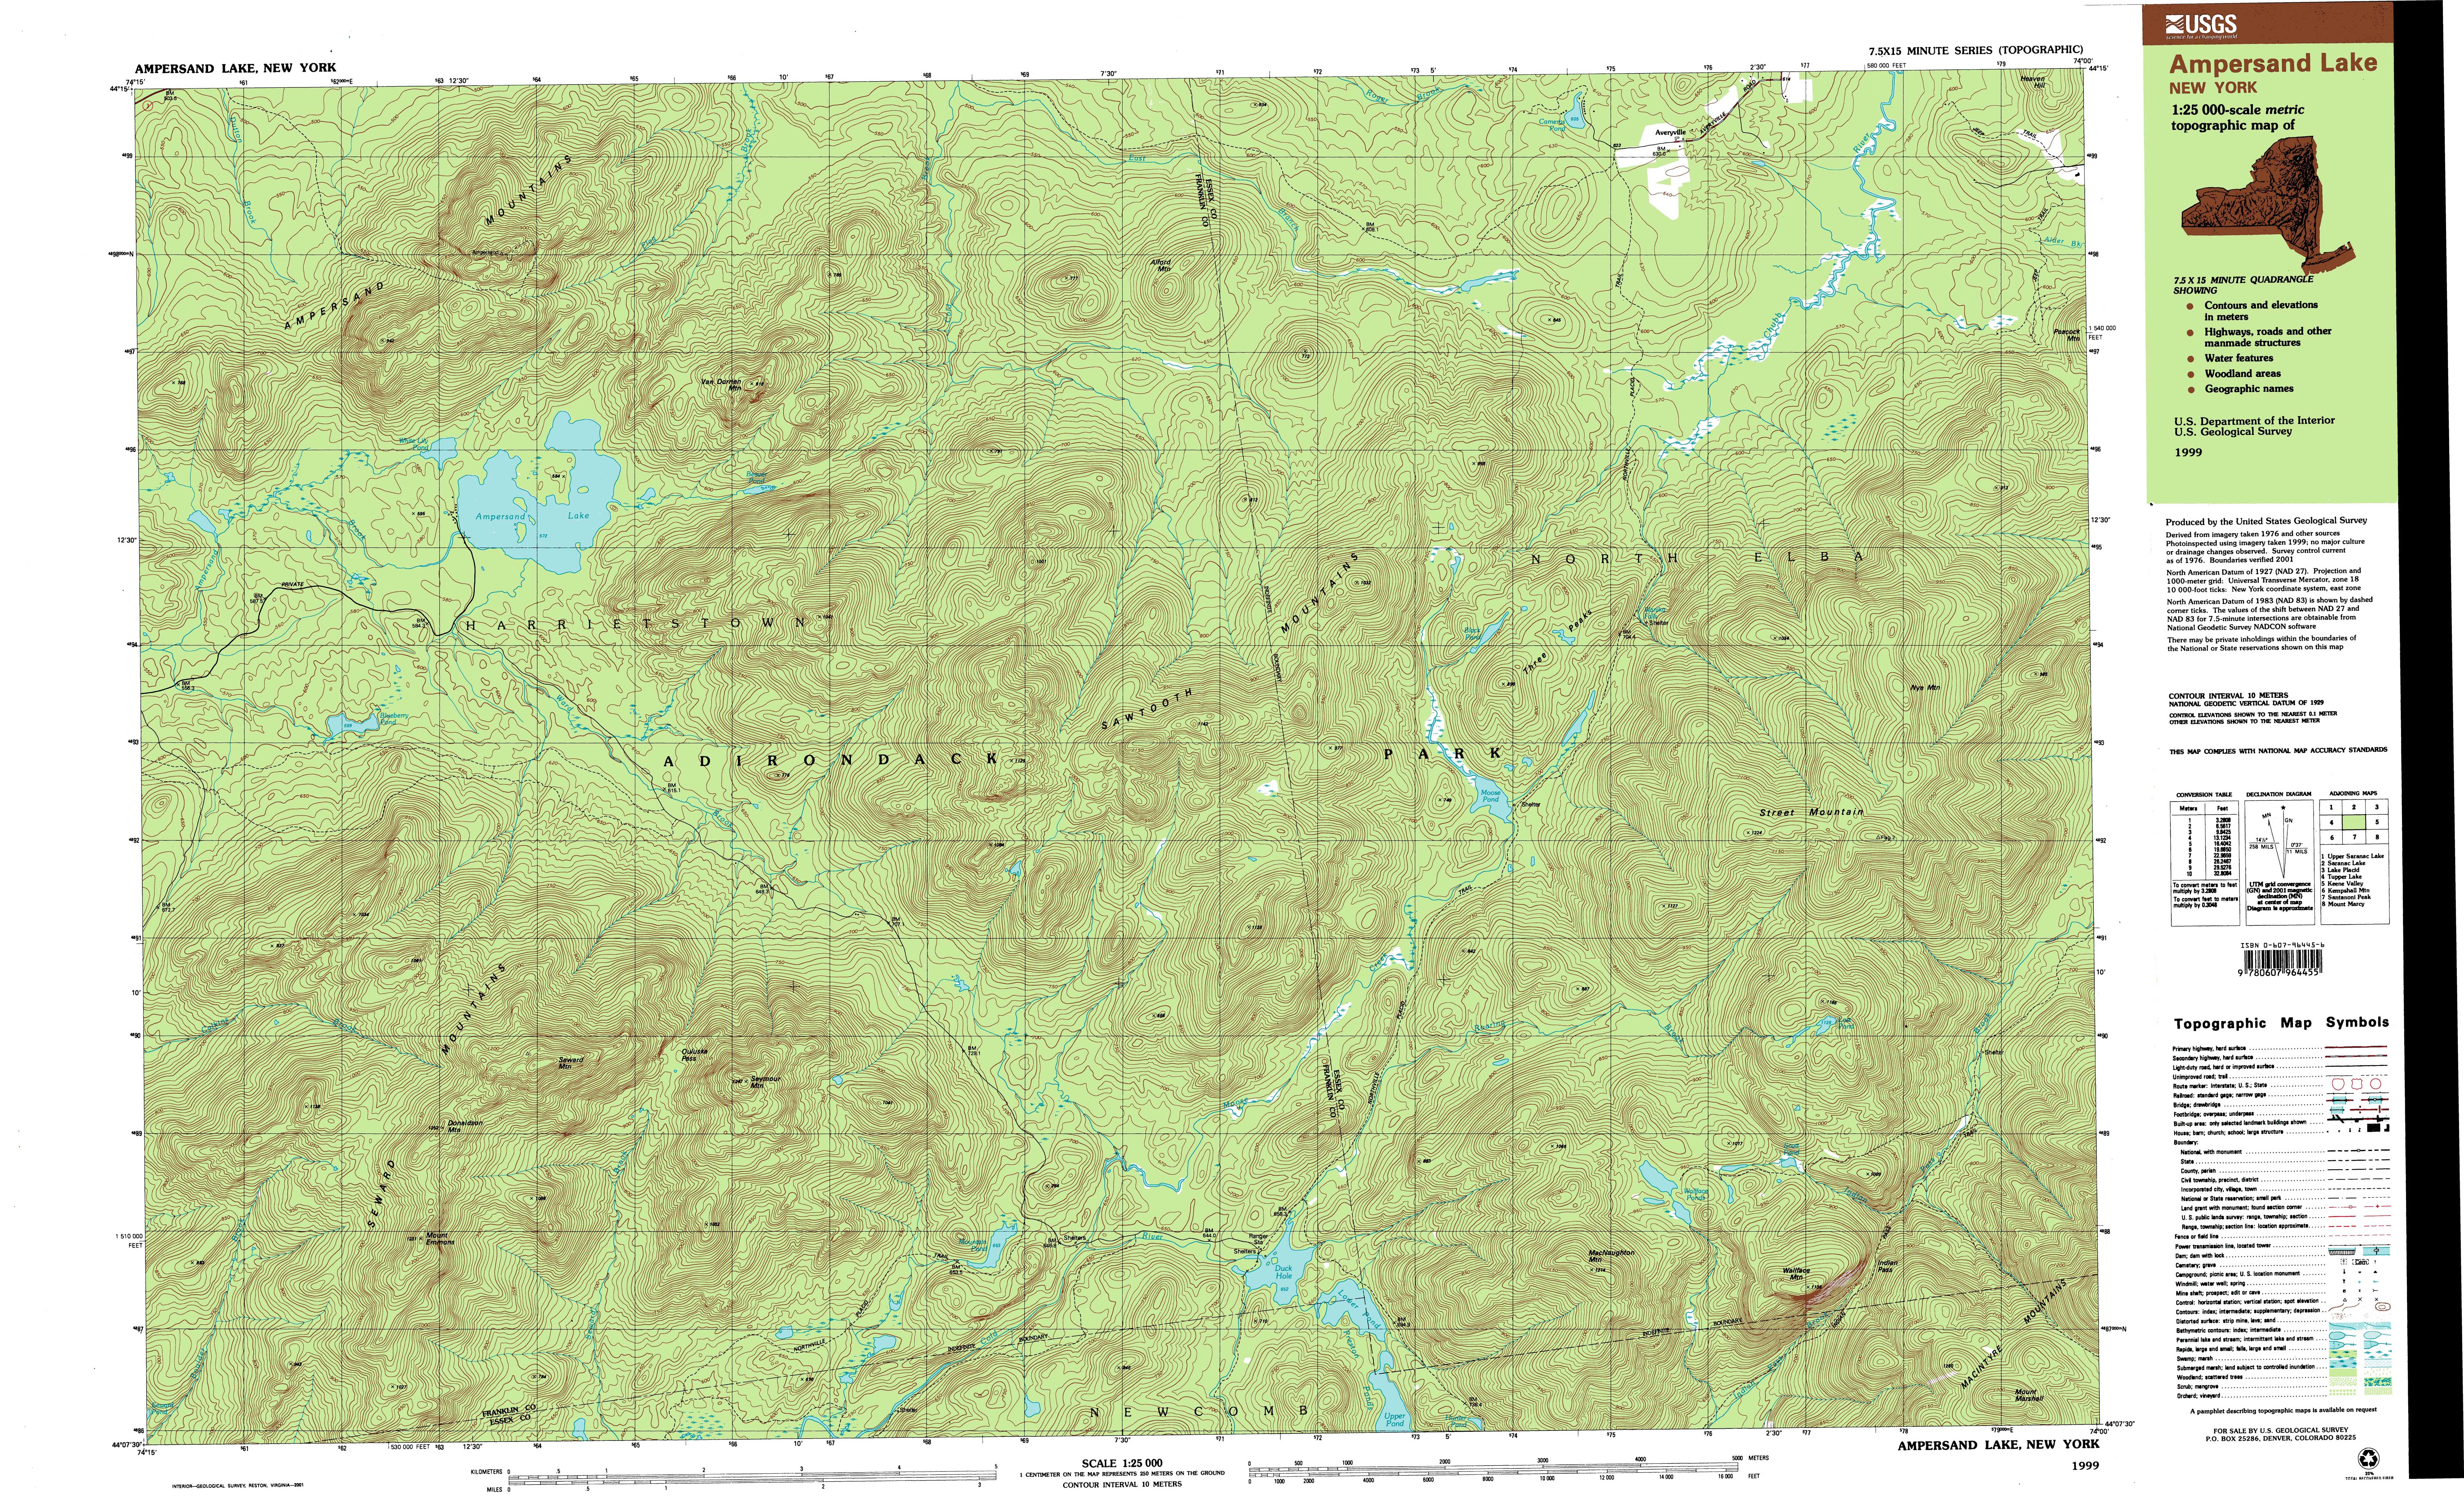 New York Topo Maps  Minute Topographic Maps  Scale - Topographic map of western us